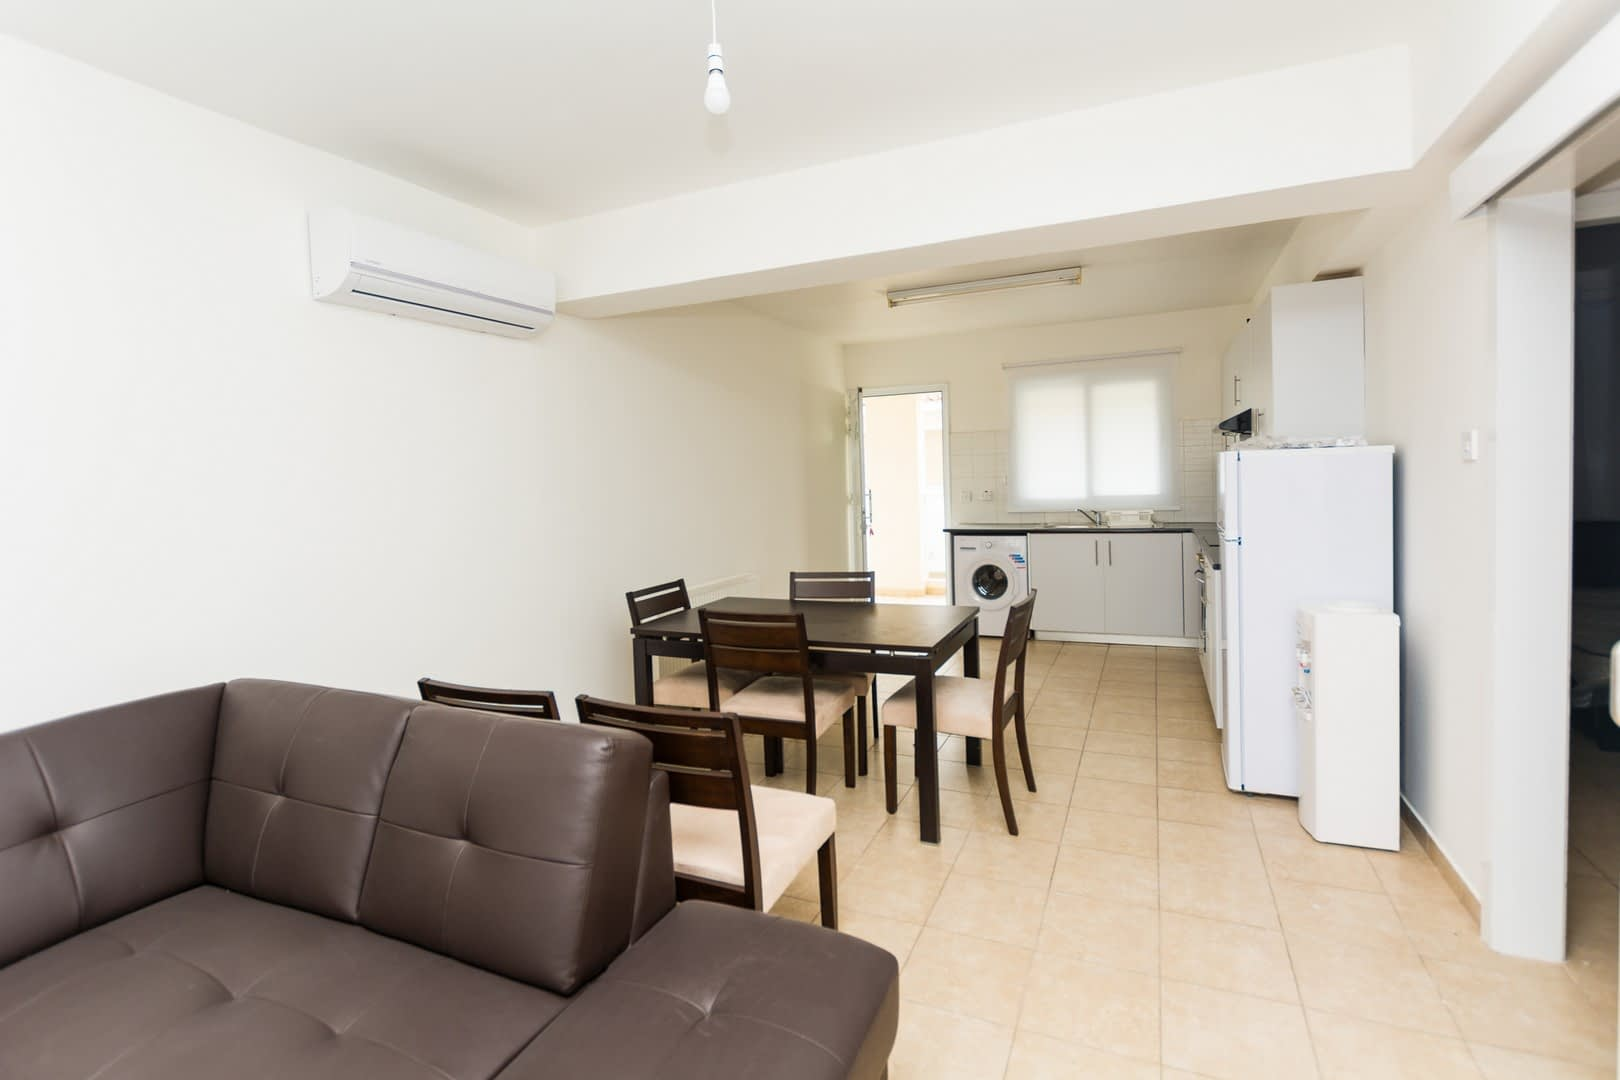 Two Bedroom Apartment in Paralimni Area for Sale